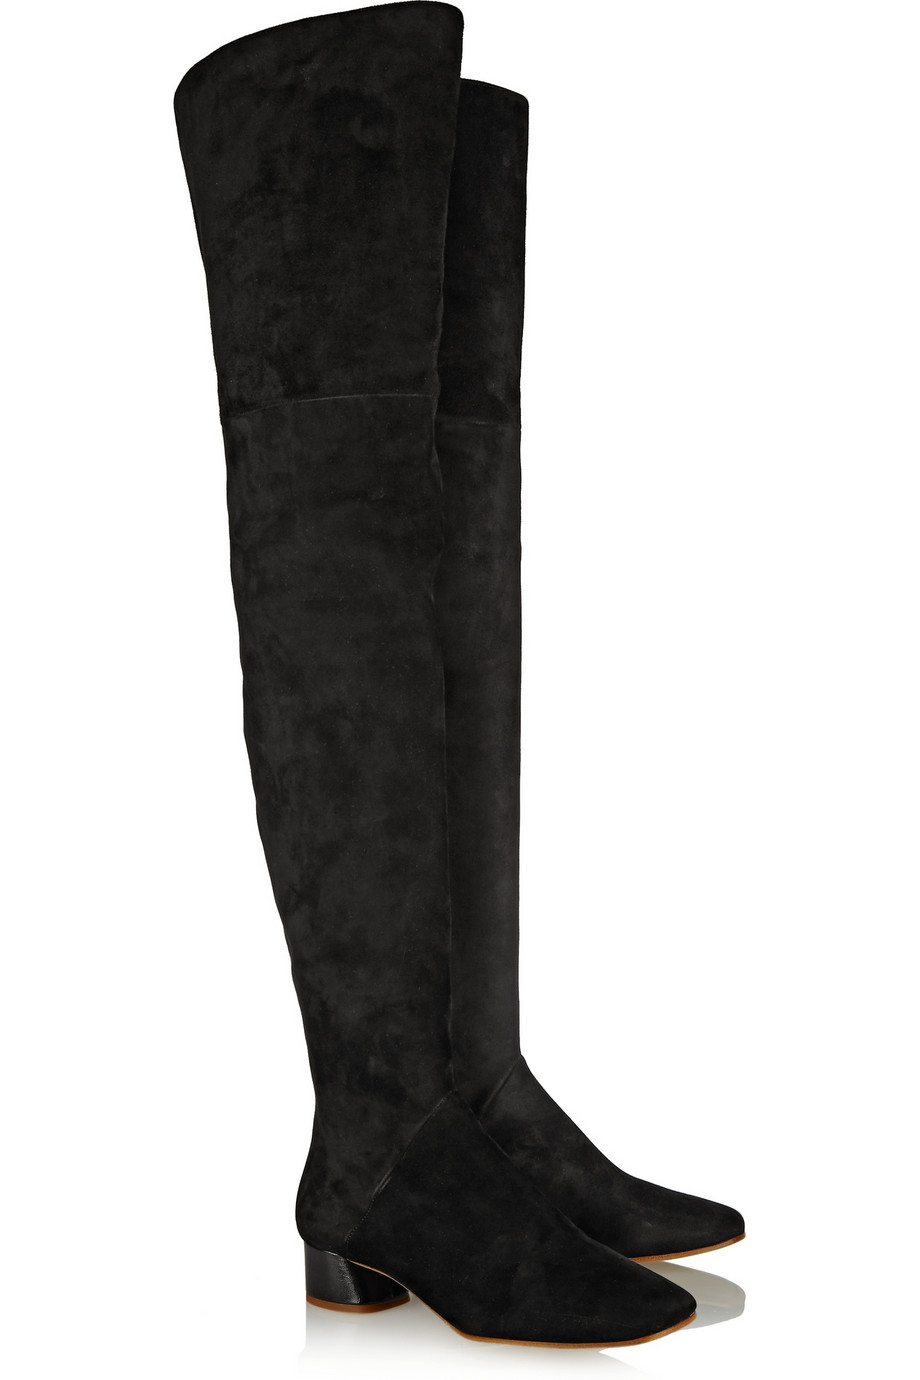 Marc Jacobs Suede Over-The-Knee Boots in Black